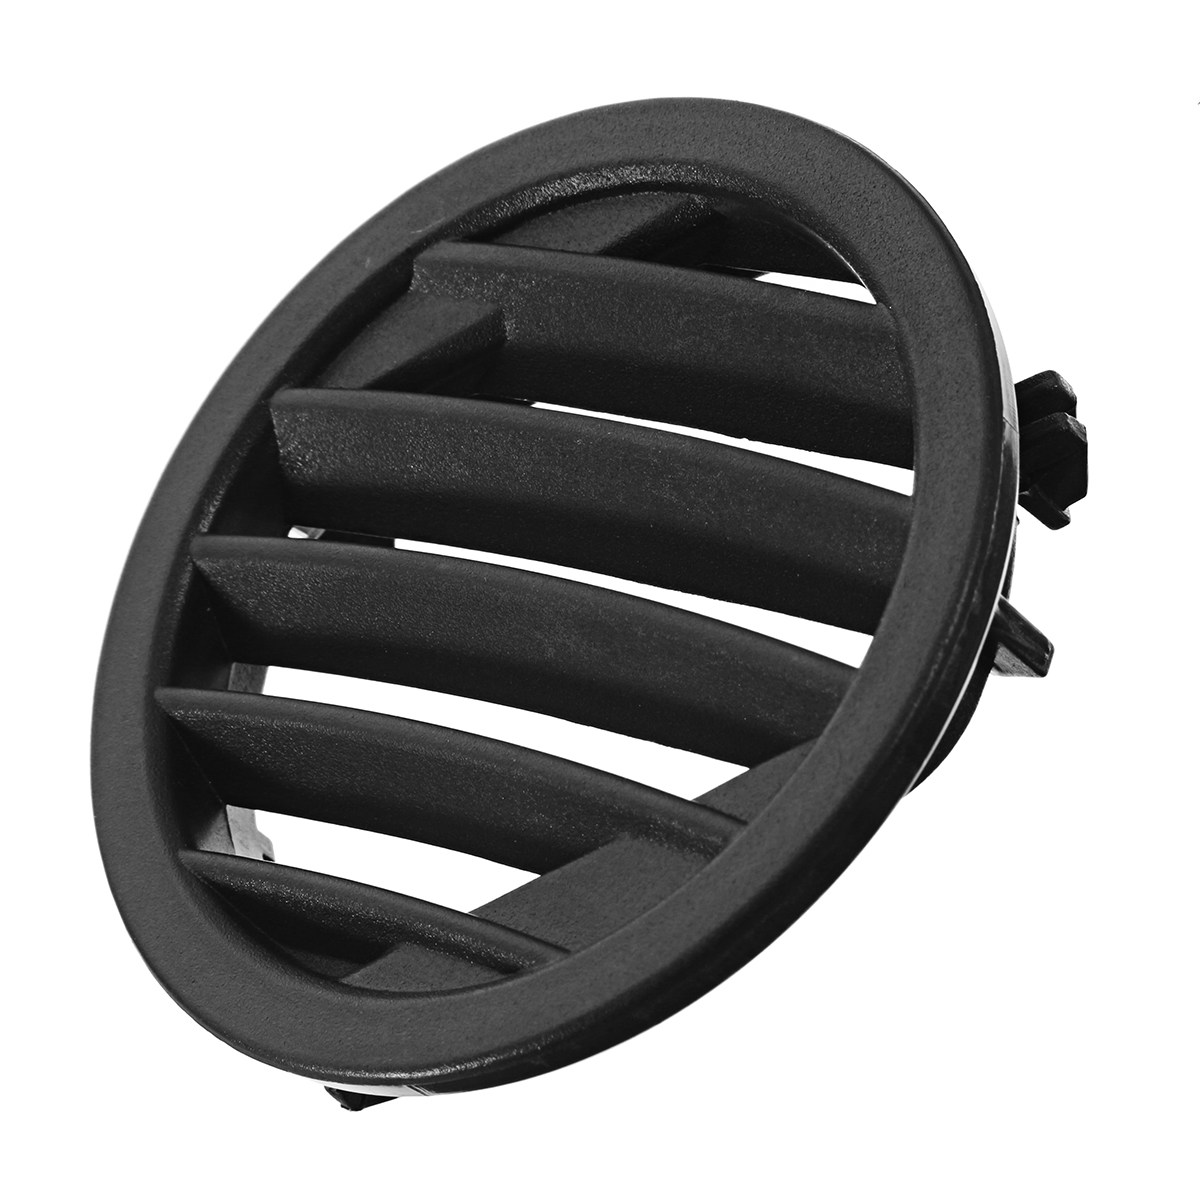 Car Right Air Ac Vent for <font><b>Mercedes</b></font> X204 GLK350 GLK250 2010 and up image